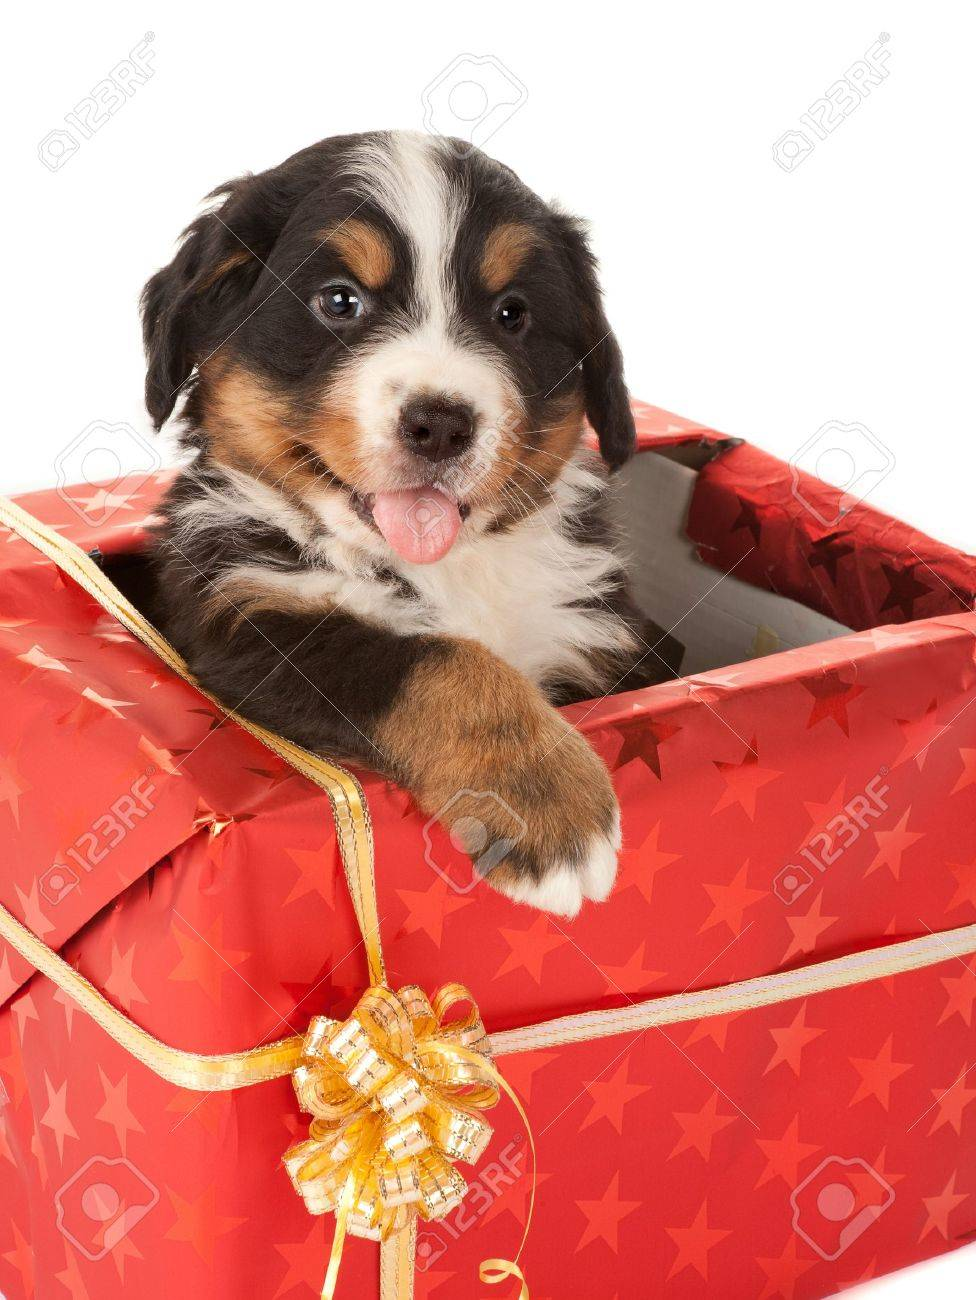 Bernese Mountain Dog Puppy Sitting In A Christmas Present Stock Photo Picture And Royalty Free Image Image 7795433